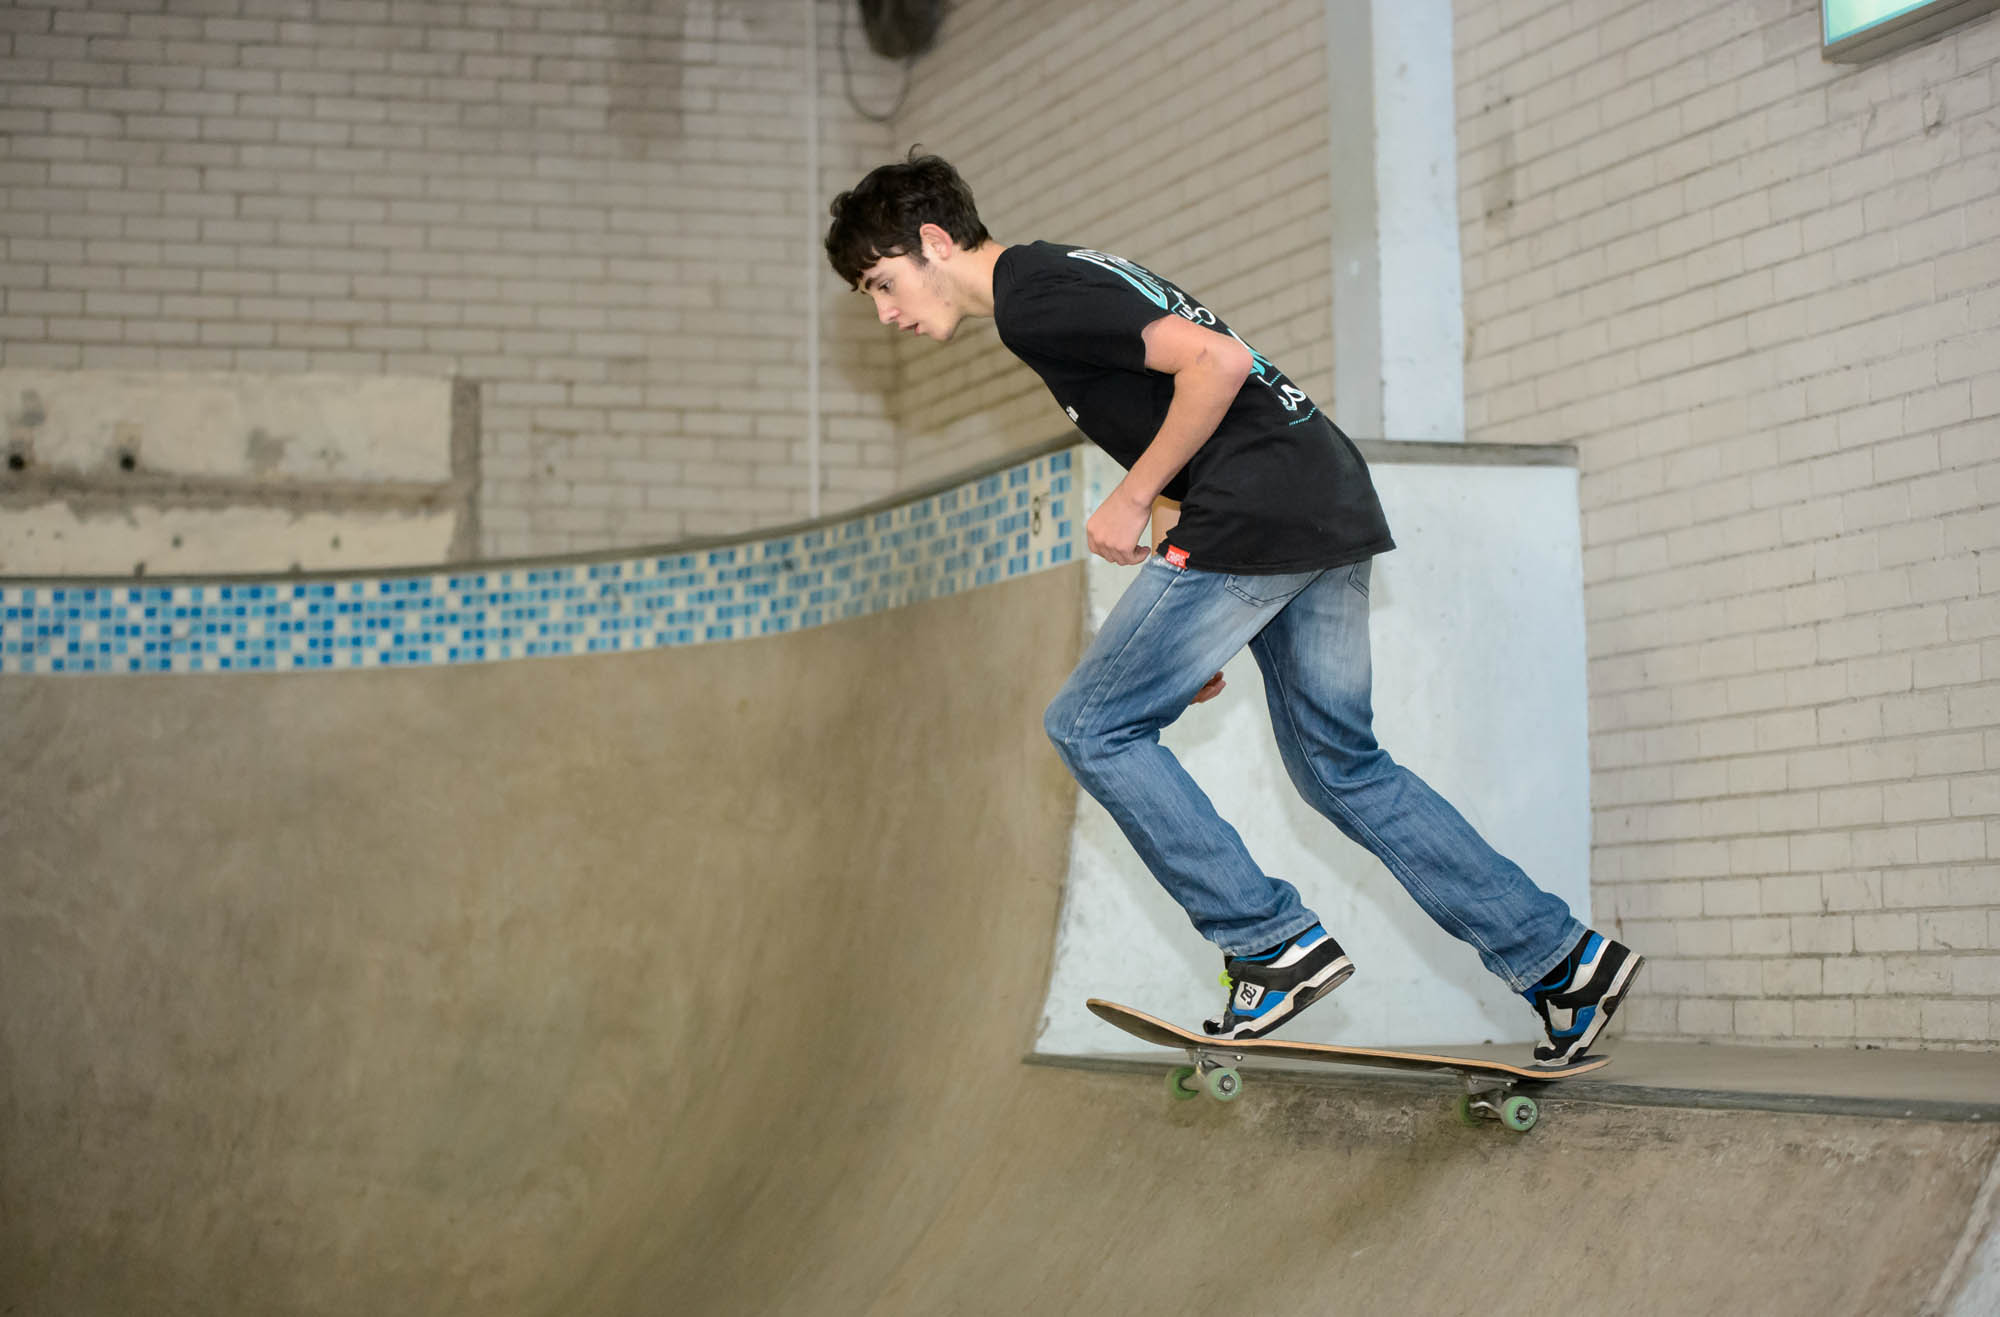 A young man skates down into a skatepark